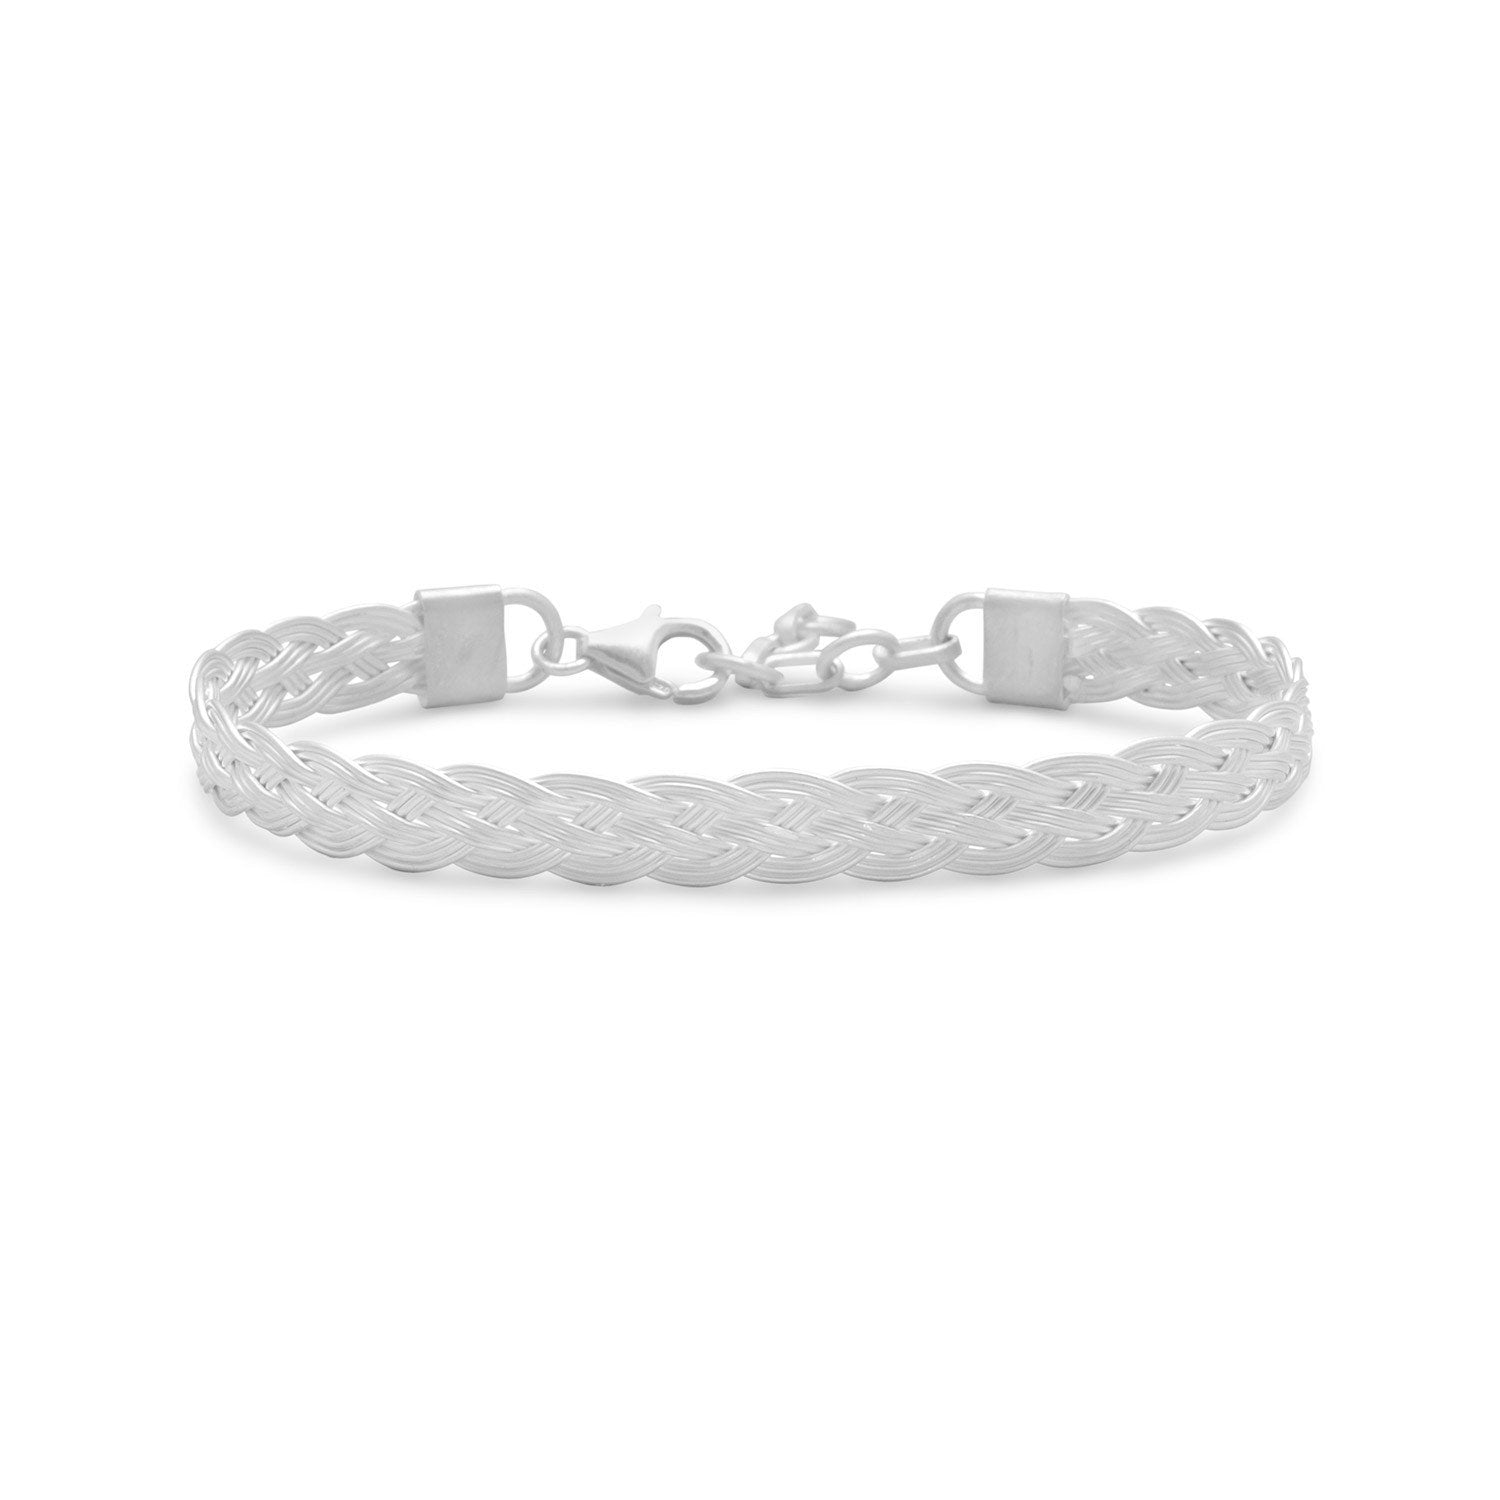 "Simple 6.5""+1"" Braided Bracelet - Rocky Mt. Outlet Inc - Shop & Save 24/7"